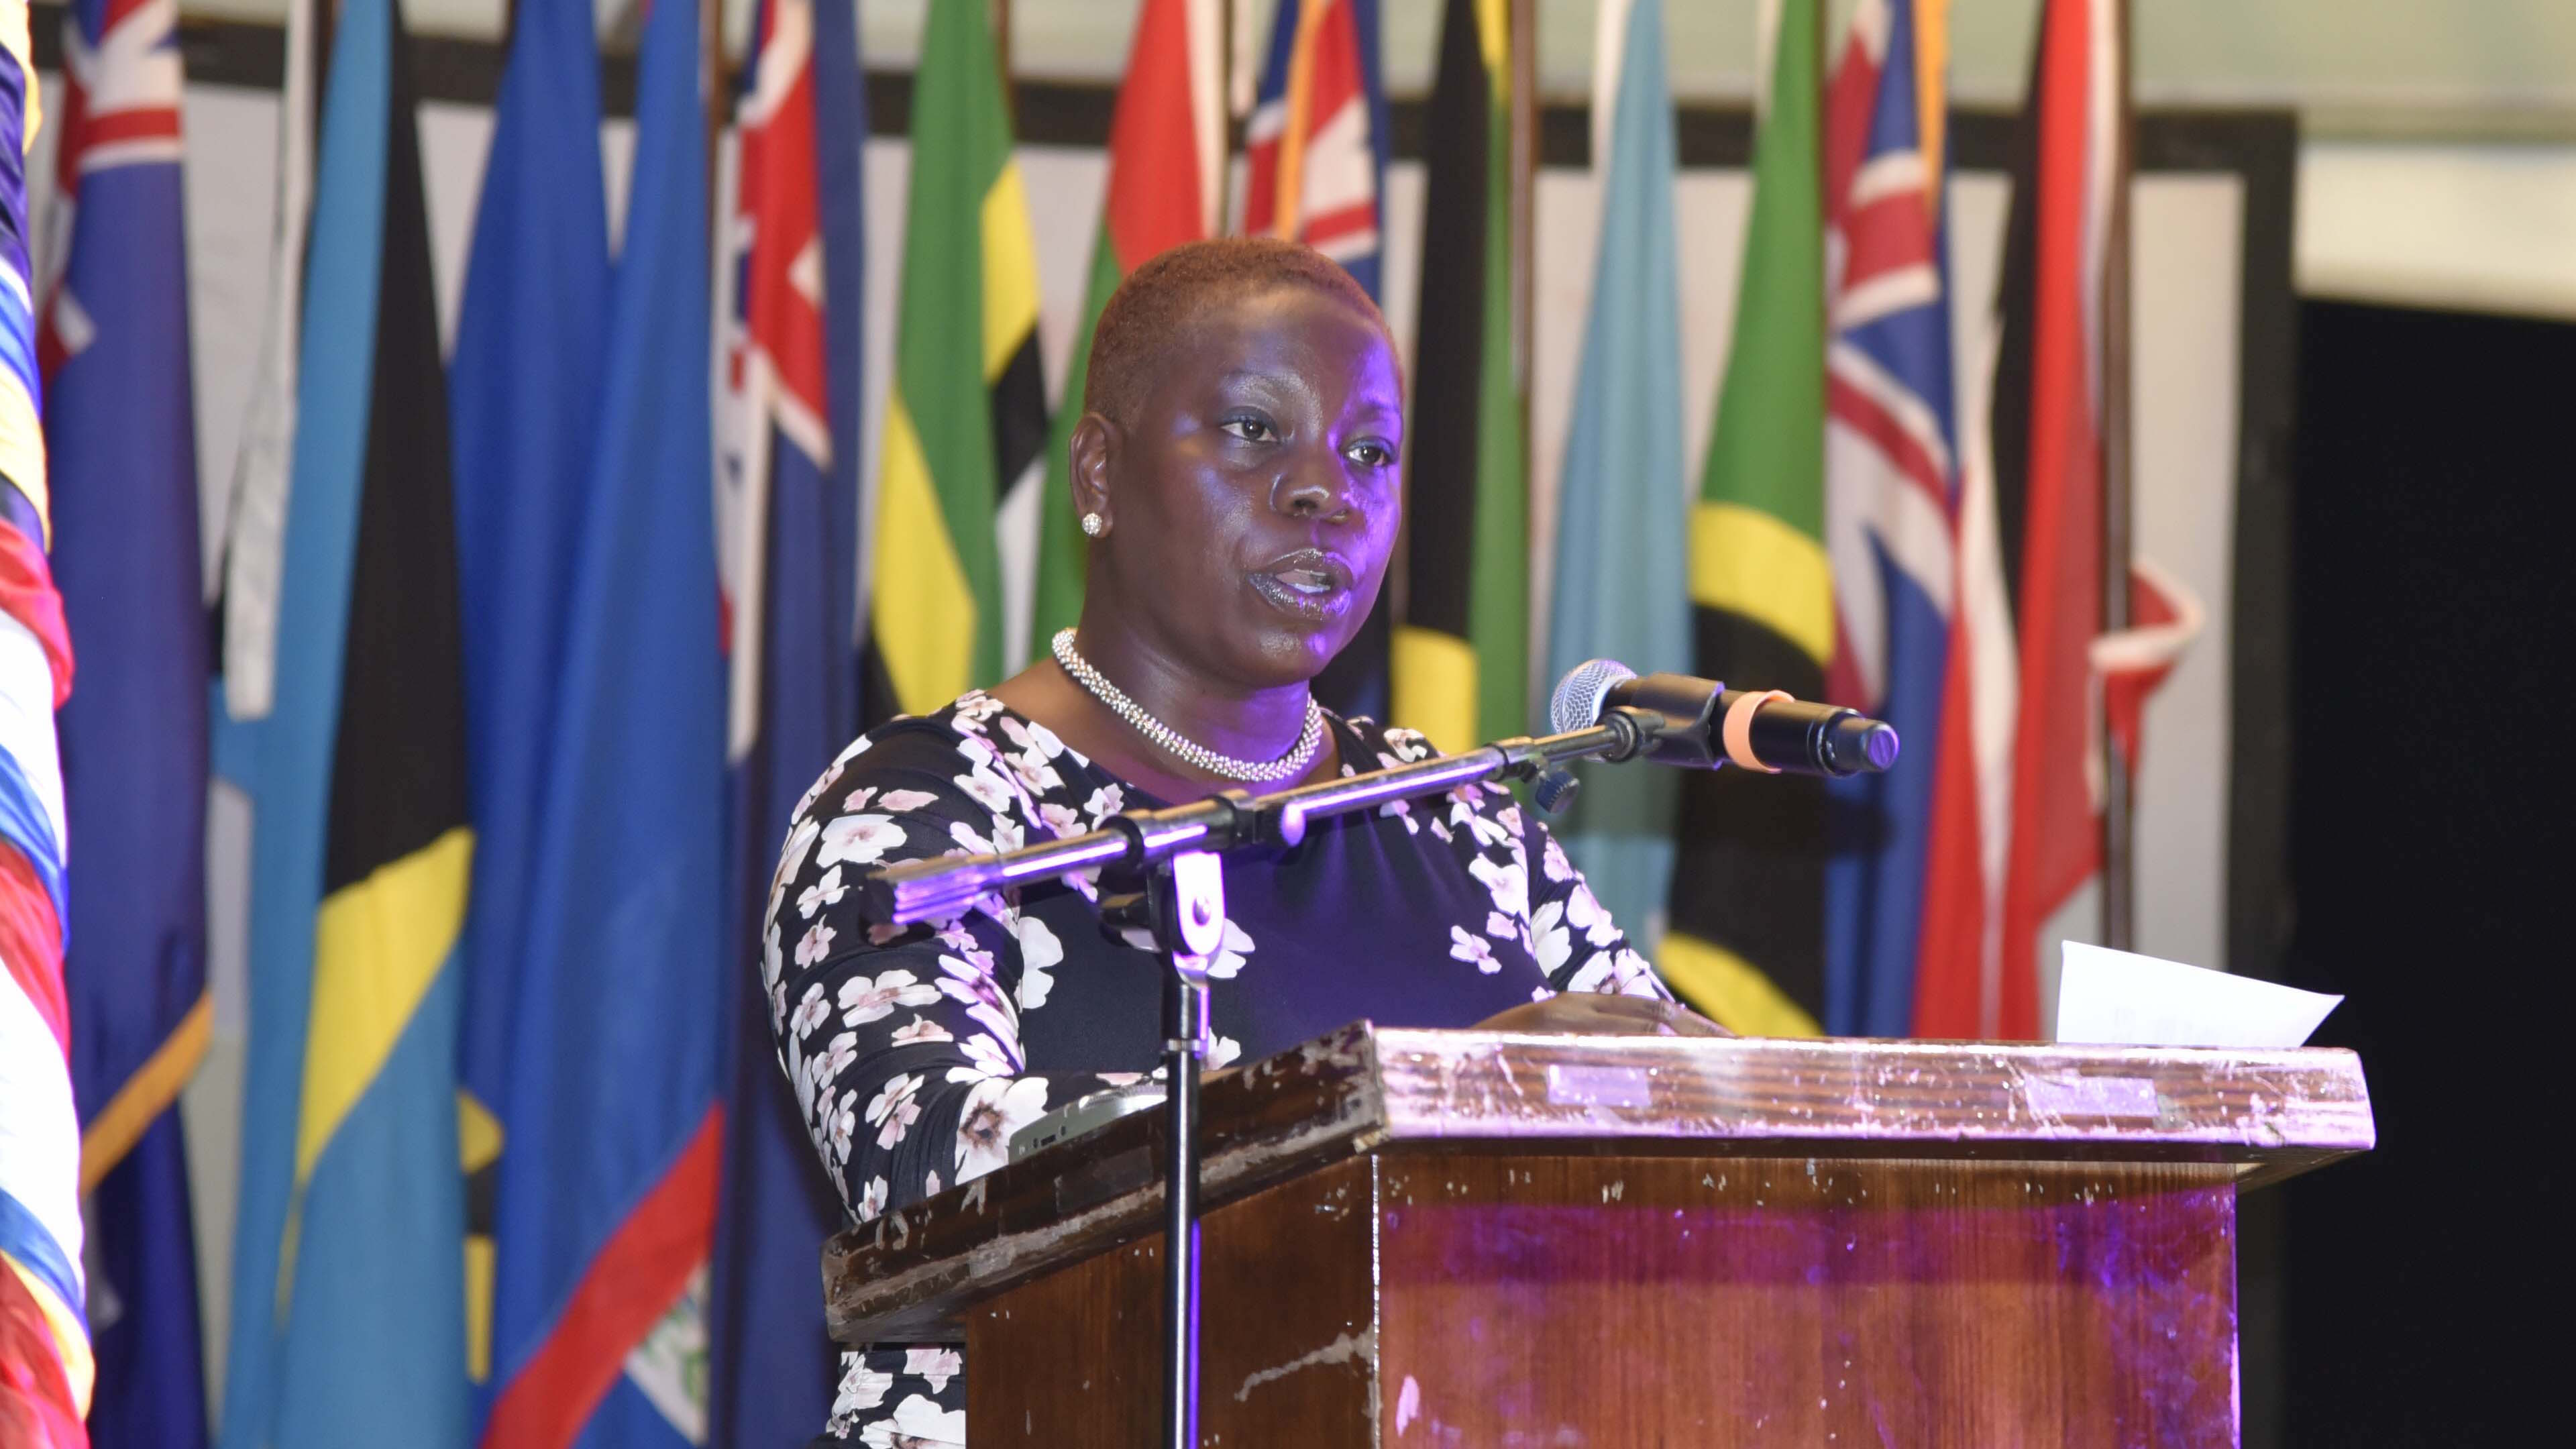 Honourable Samantha Marshall Minister of Social Transformation, Human Resource Development, Gender and Youth Affairs